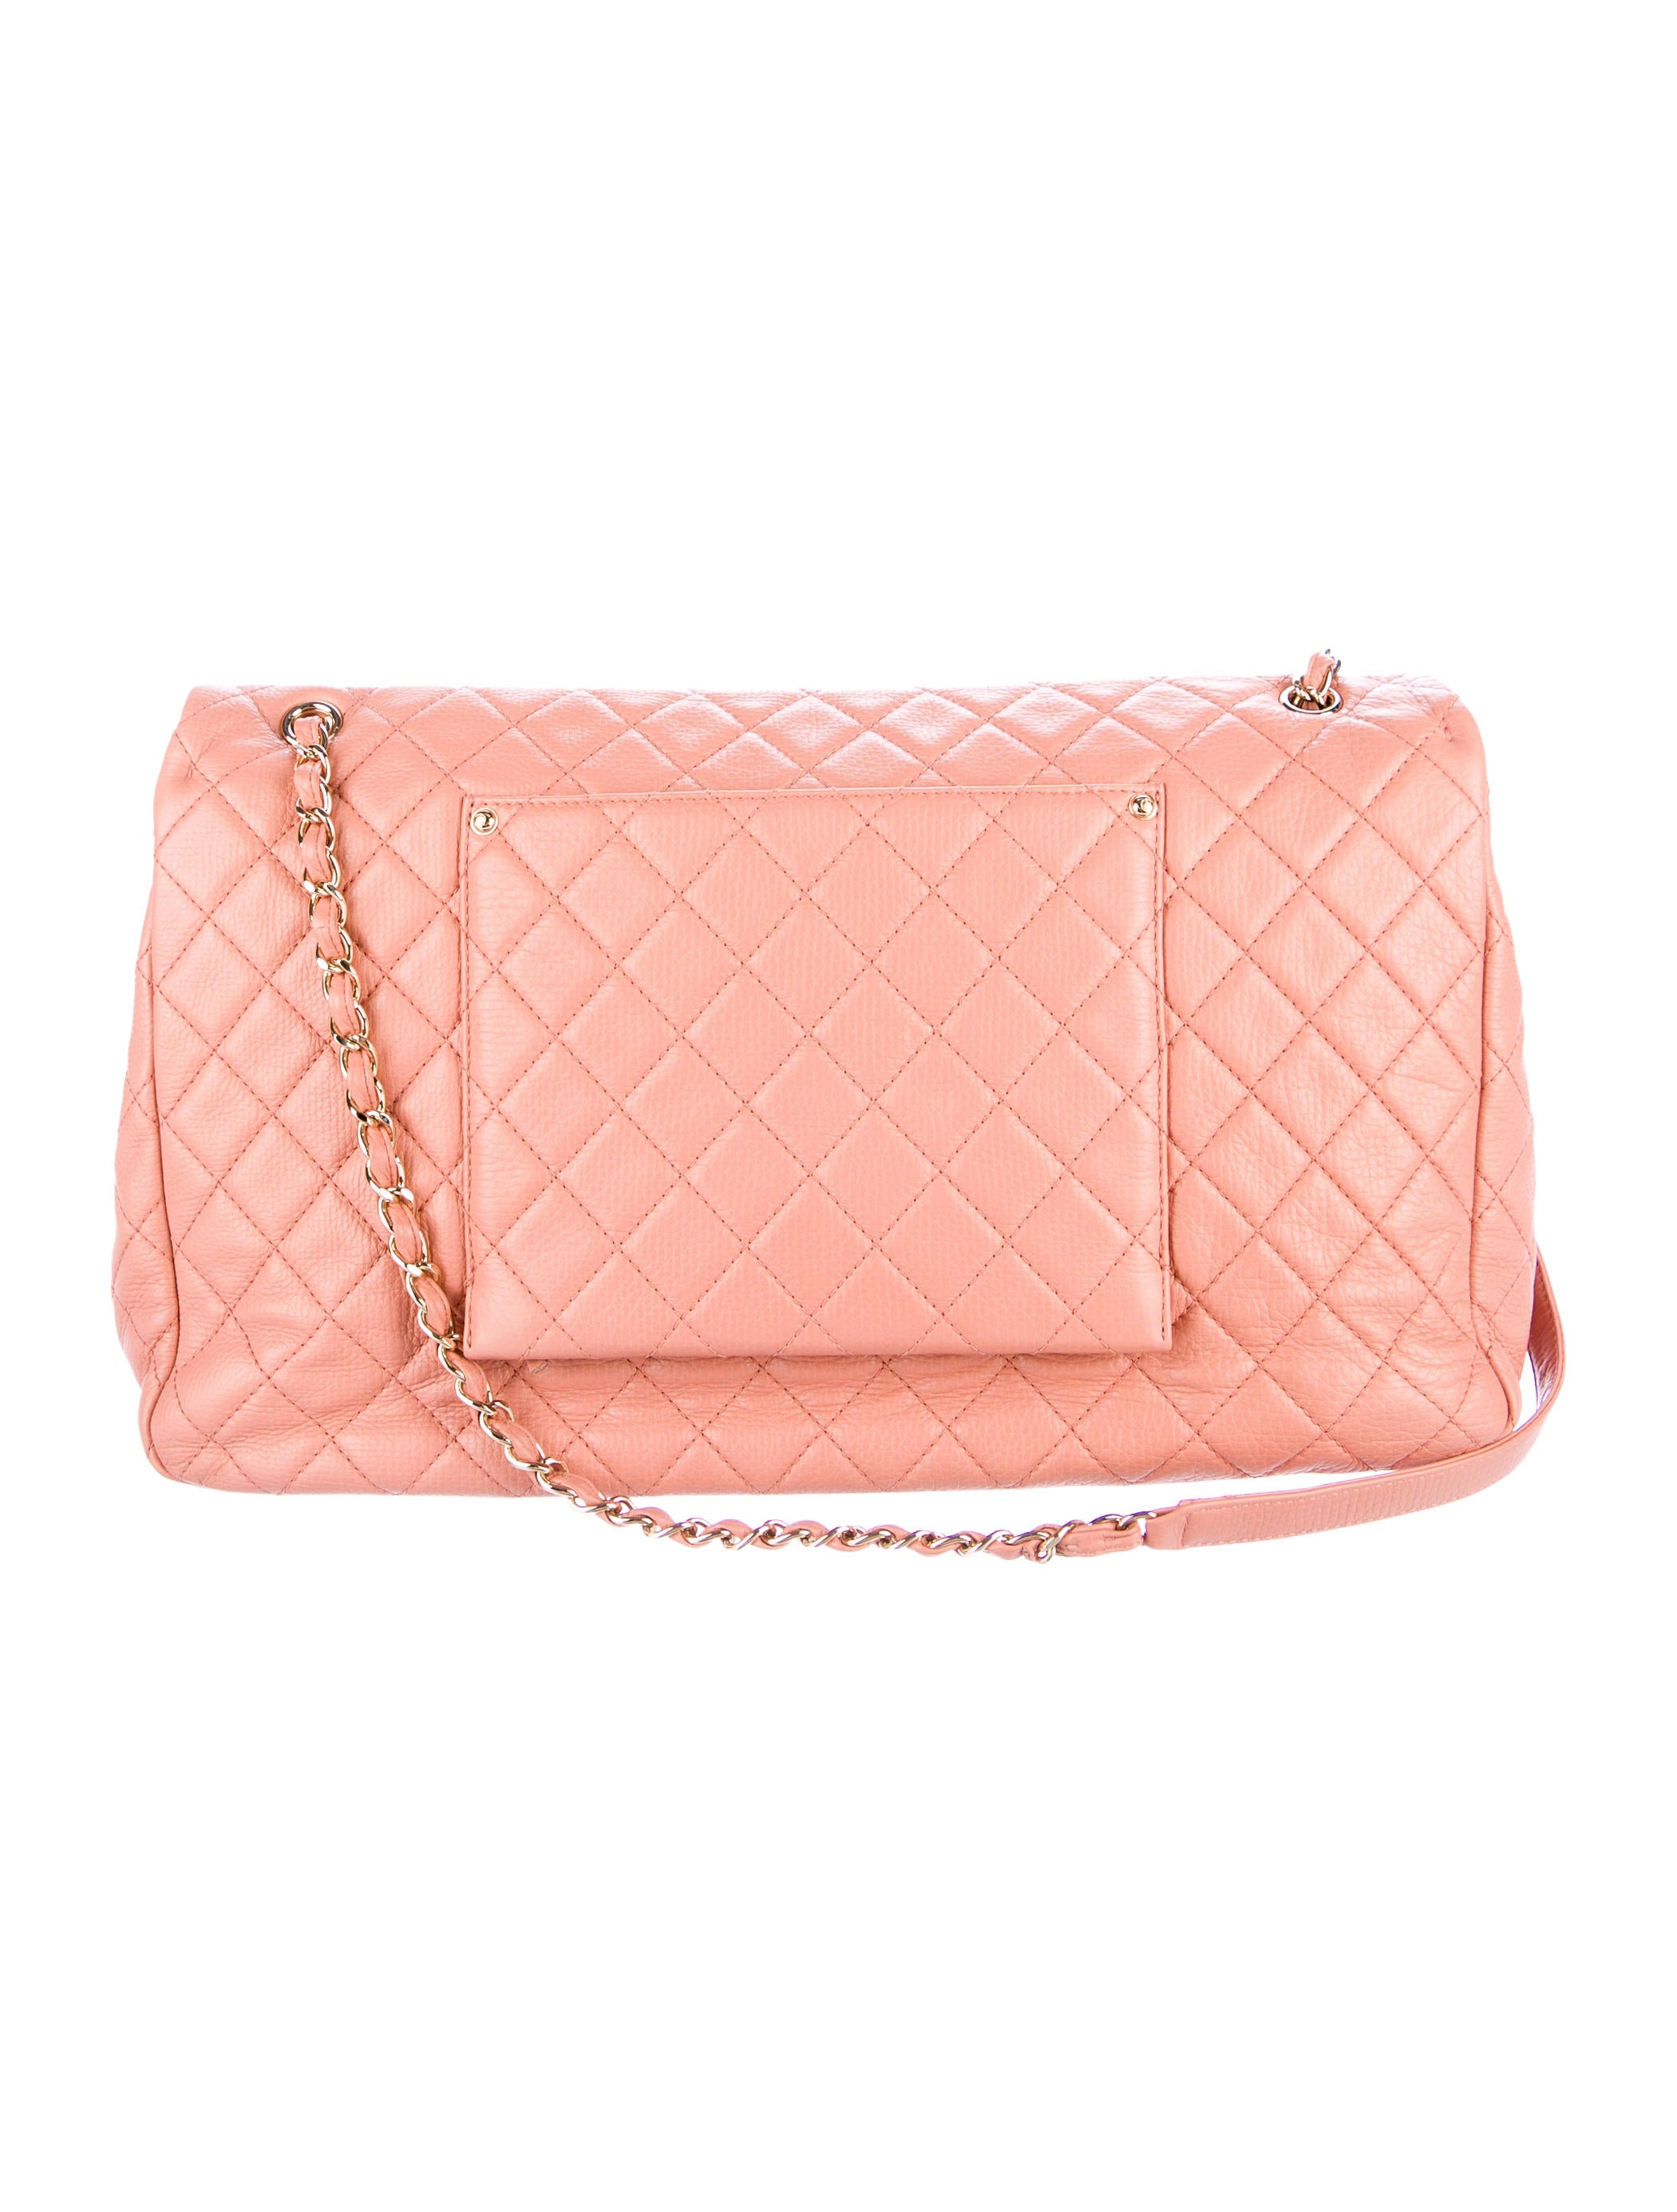 eeb3c5ee4c4ee6 Chanel 2016 Xxl Airline Classic Flap Bag | Stanford Center for ...